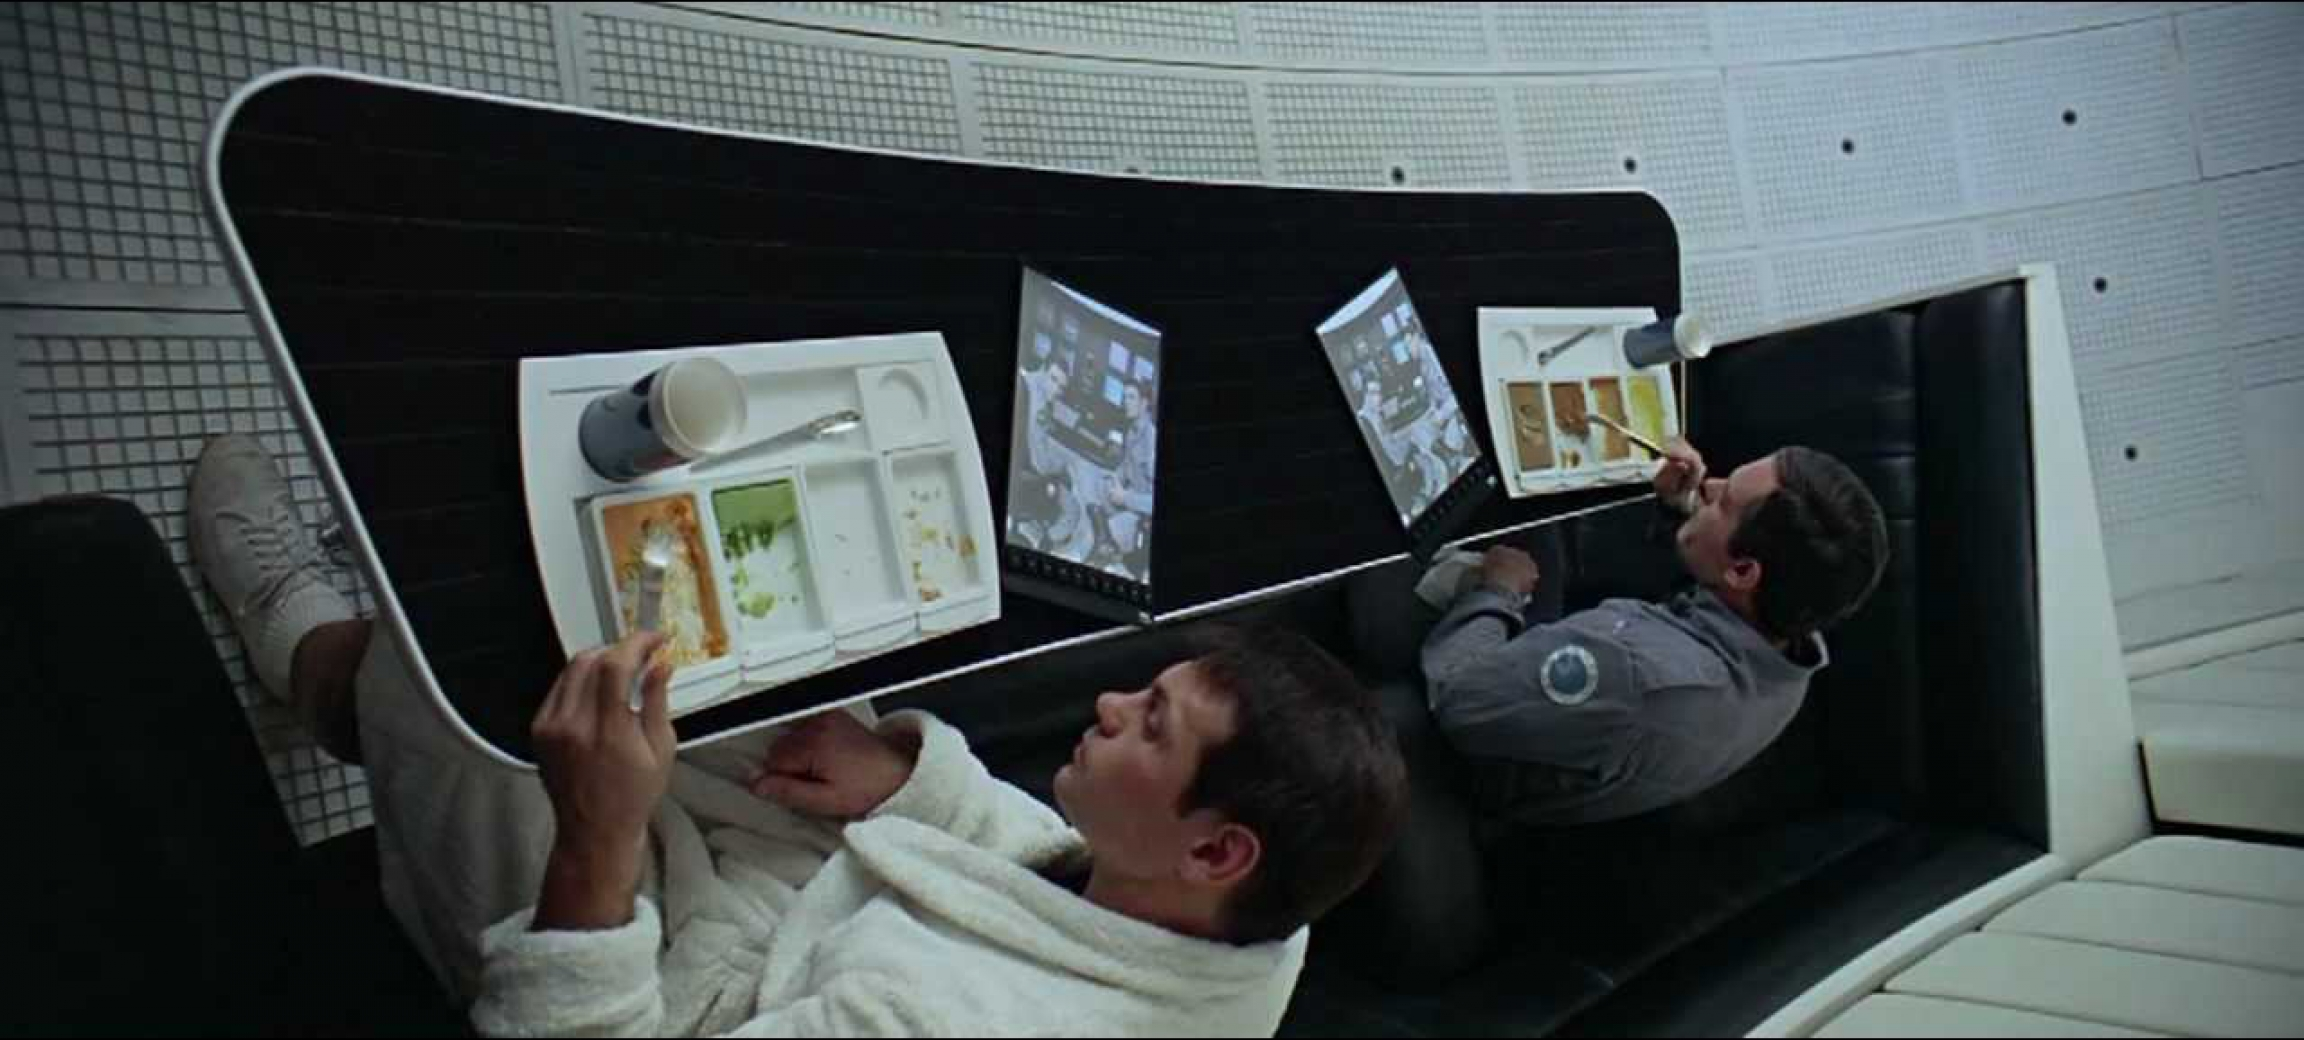 """Dr. Francis Poole and Commander David Bowman watch a news segment about their mission on iPad-like screens in Stanley Kubrick's """"2001: A Space Odyssey."""""""